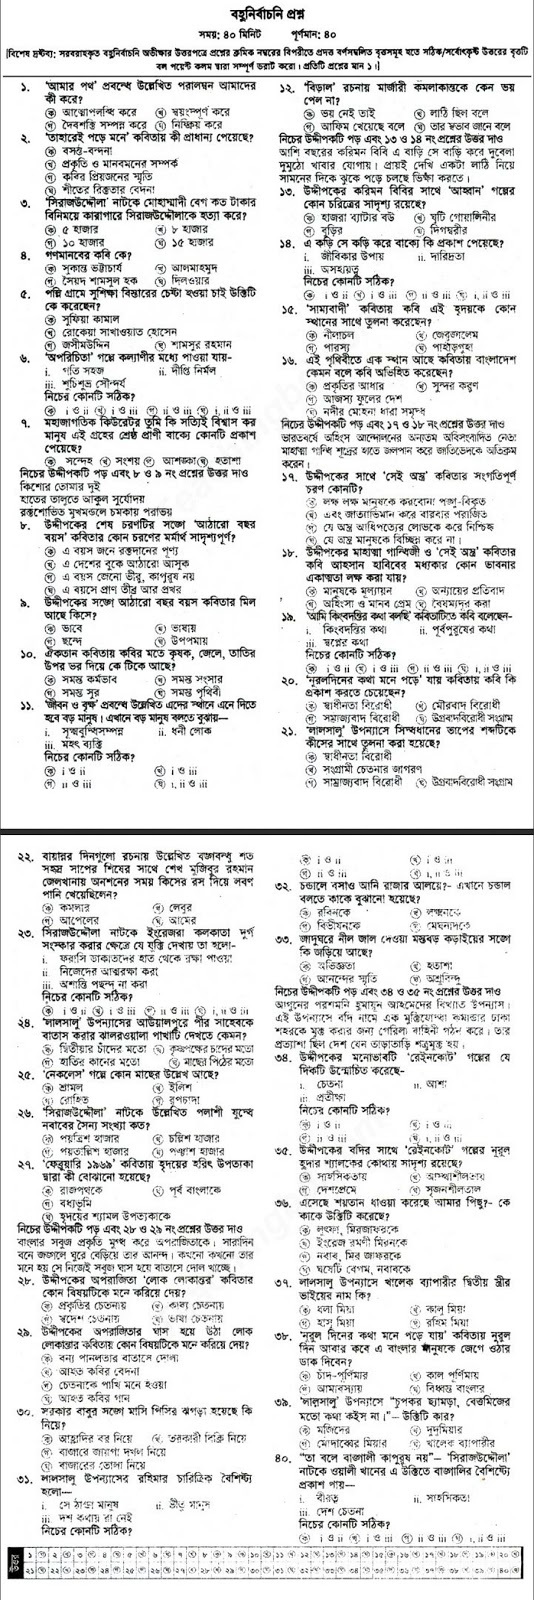 Hsc Bangla 1st Paper Suggetion 2020 | Hsc Bangla 1st Paper Question and Suggetion 2020